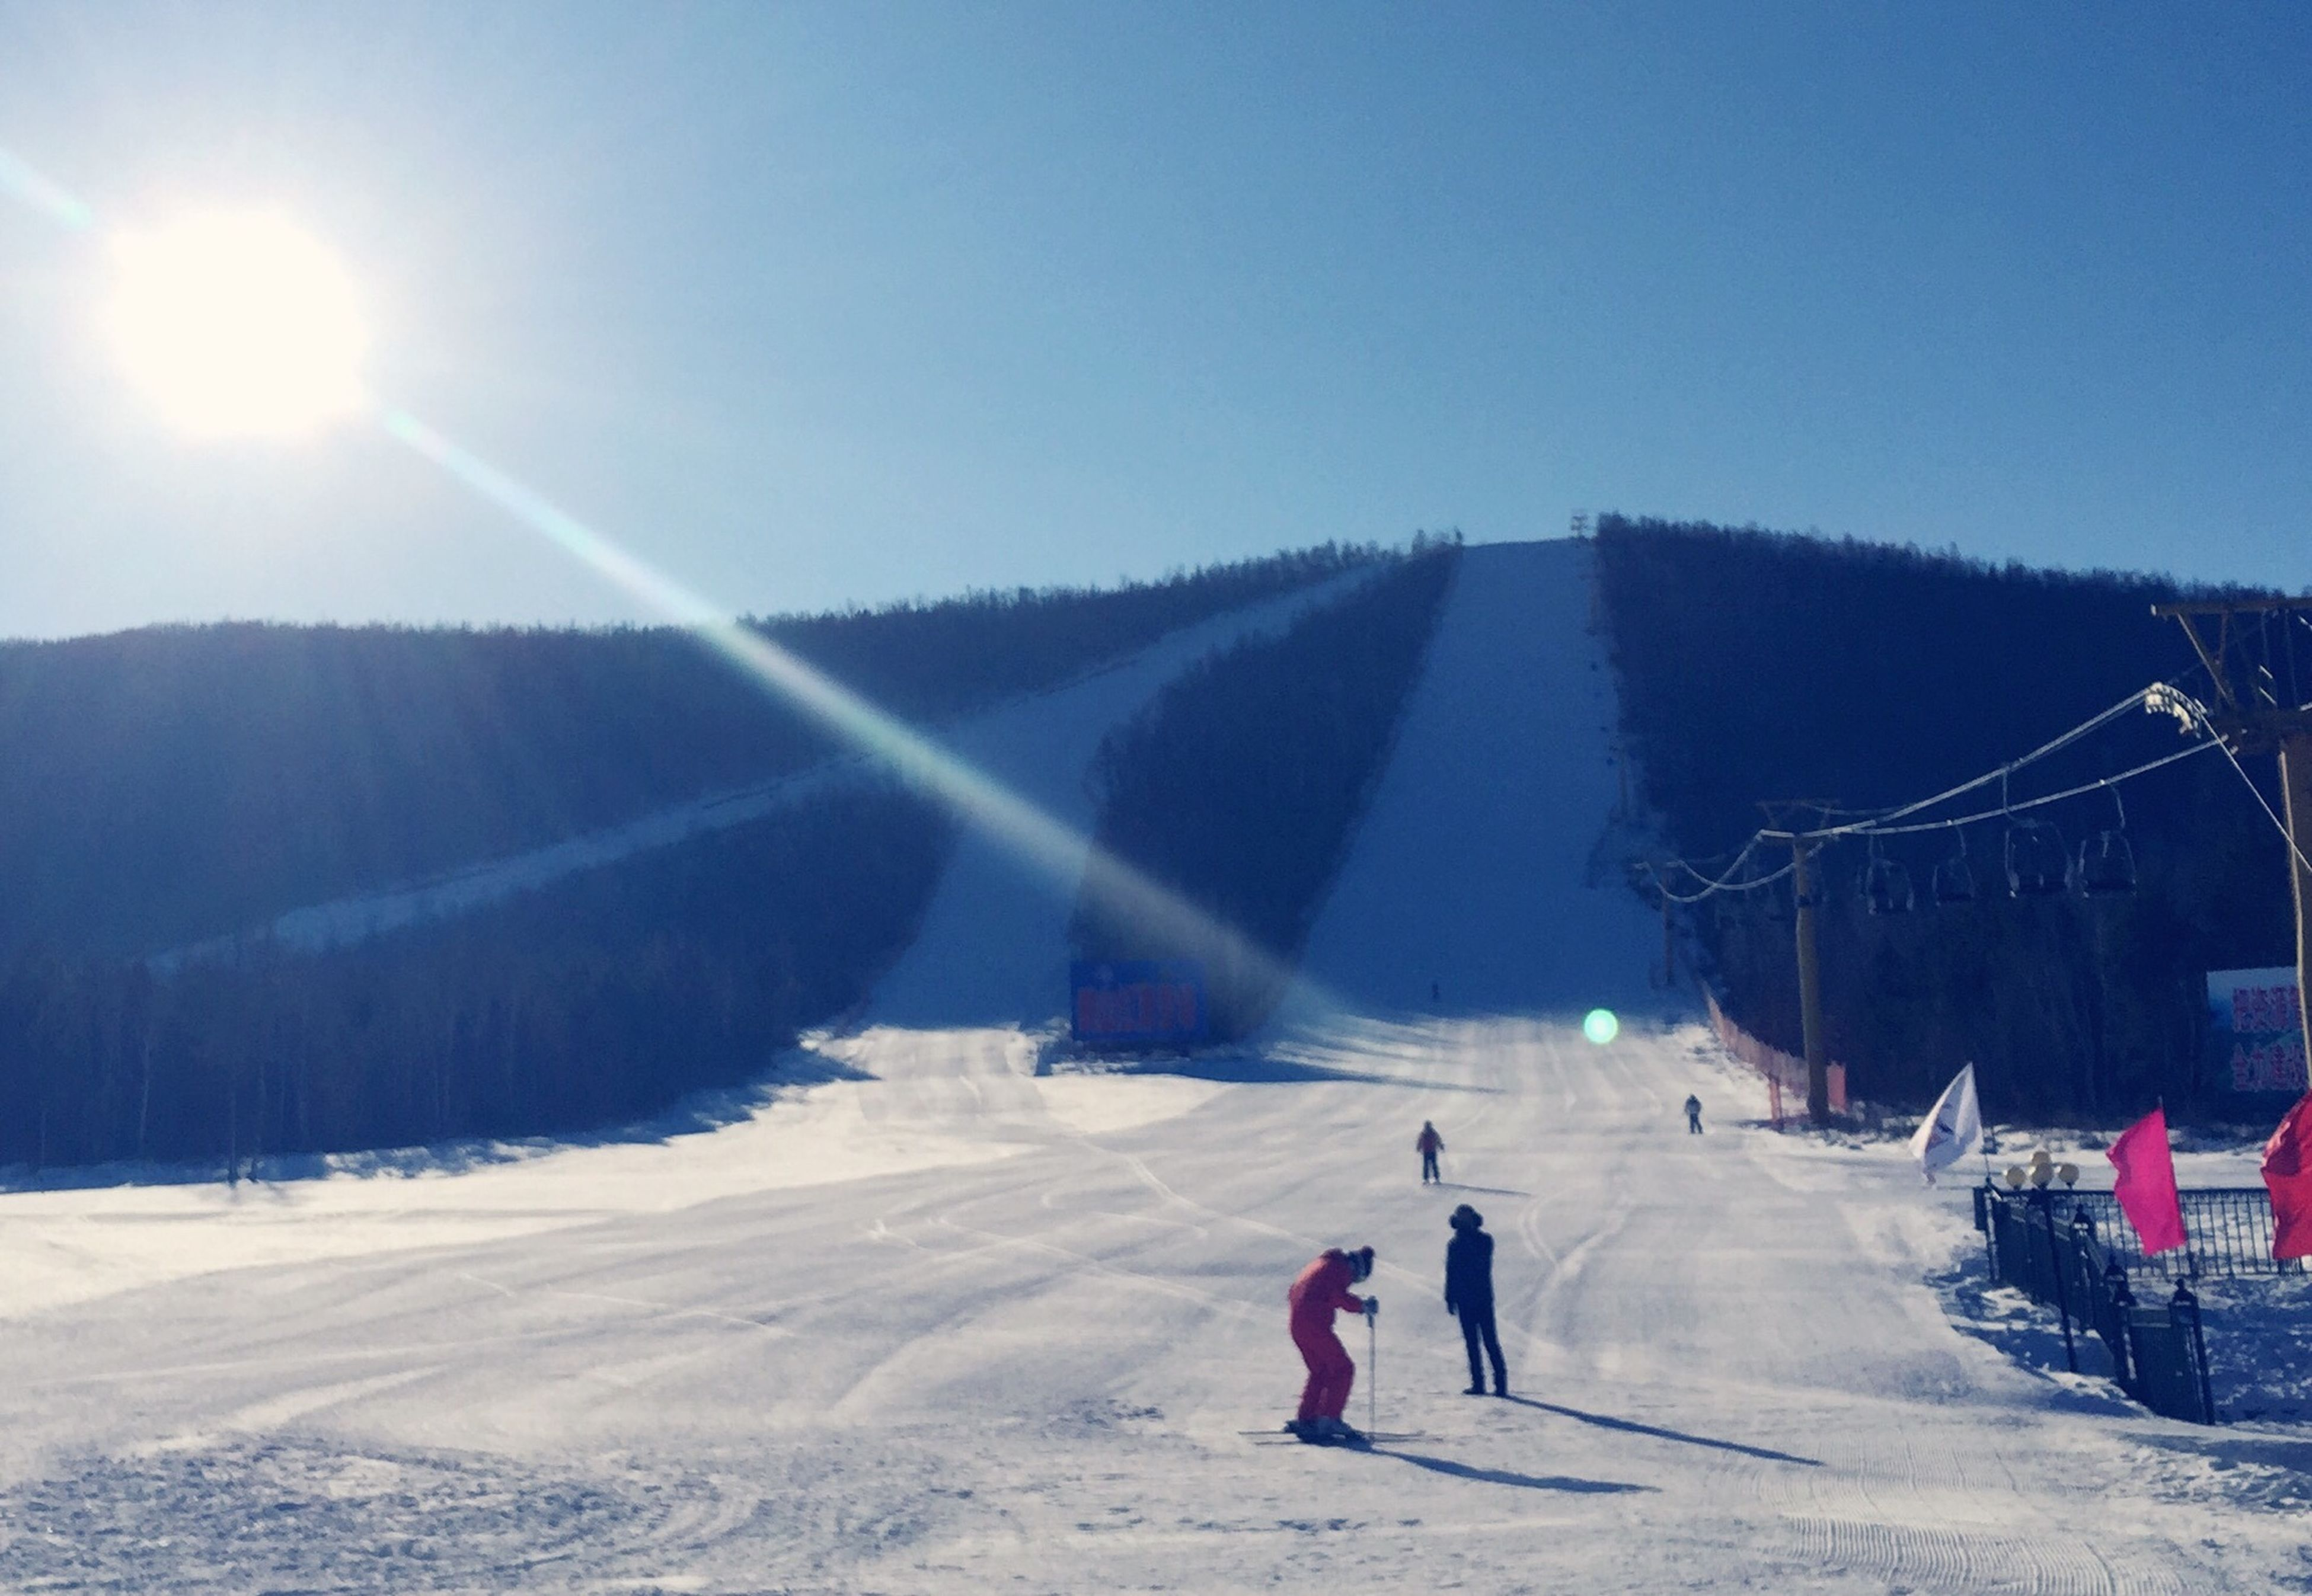 snow, winter, cold temperature, leisure activity, lifestyles, season, men, clear sky, full length, weather, mountain, skiing, vacations, person, landscape, sun, tourist, rear view